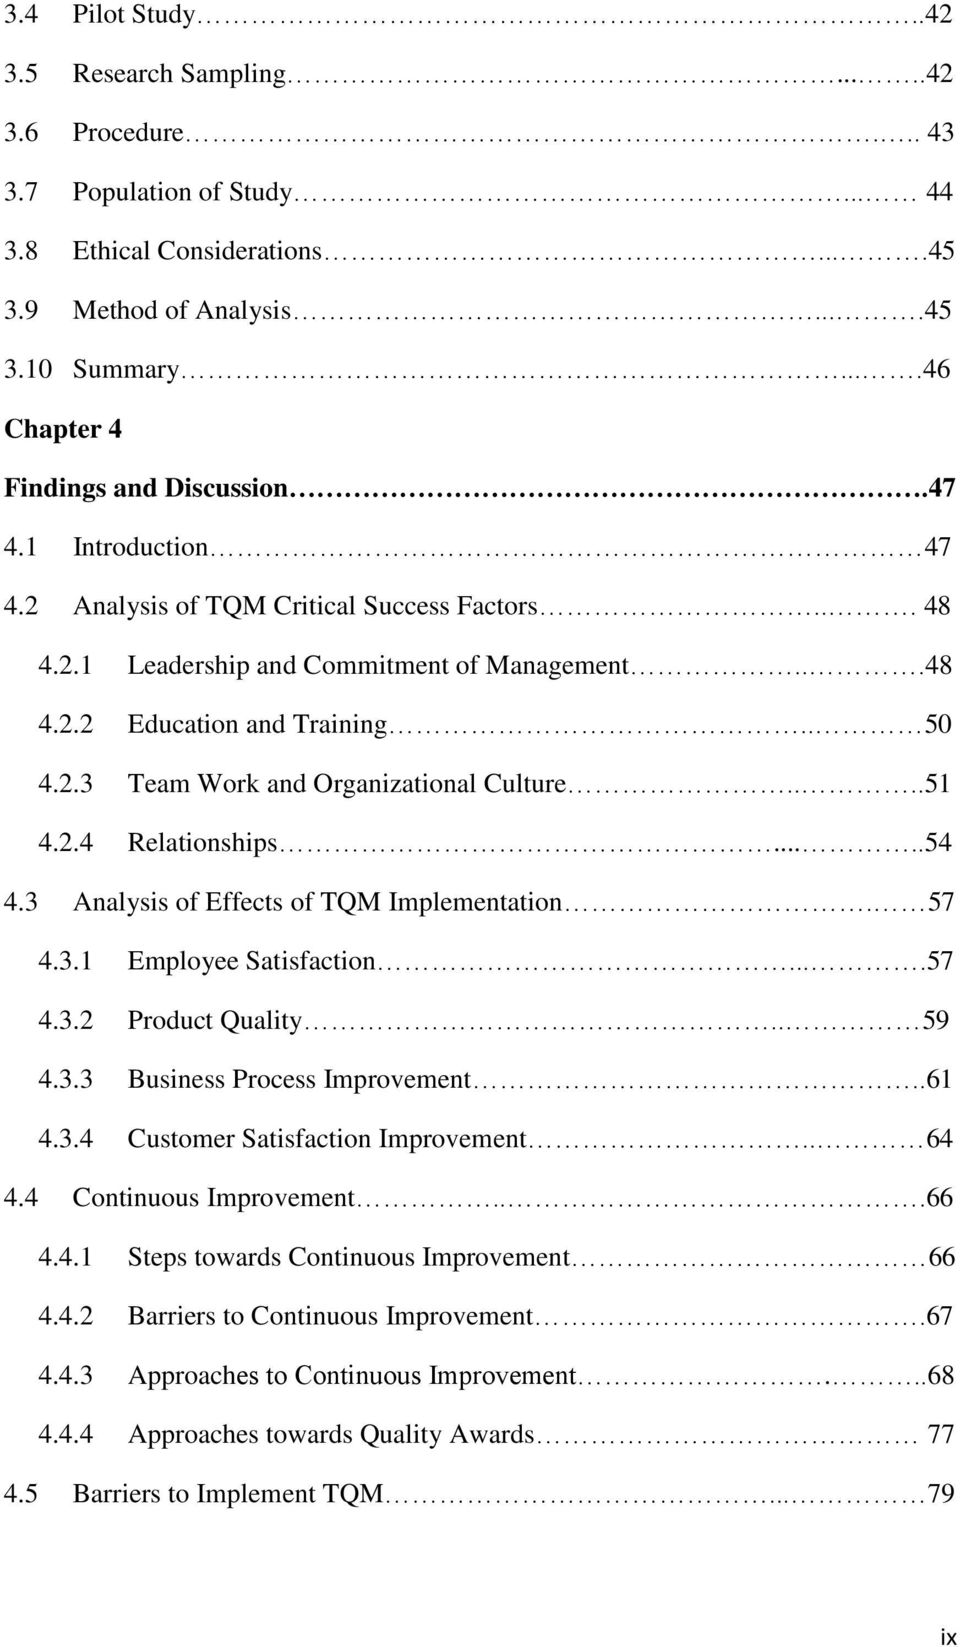 2.3 Team Work and Organizational Culture....51 4.2.4 Relationships.....54 4.3 Analysis of Effects of TQM Implementation. 57 4.3.1 Employee Satisfaction....57 4.3.2 Product Quality.. 59 4.3.3 Business Process Improvement.